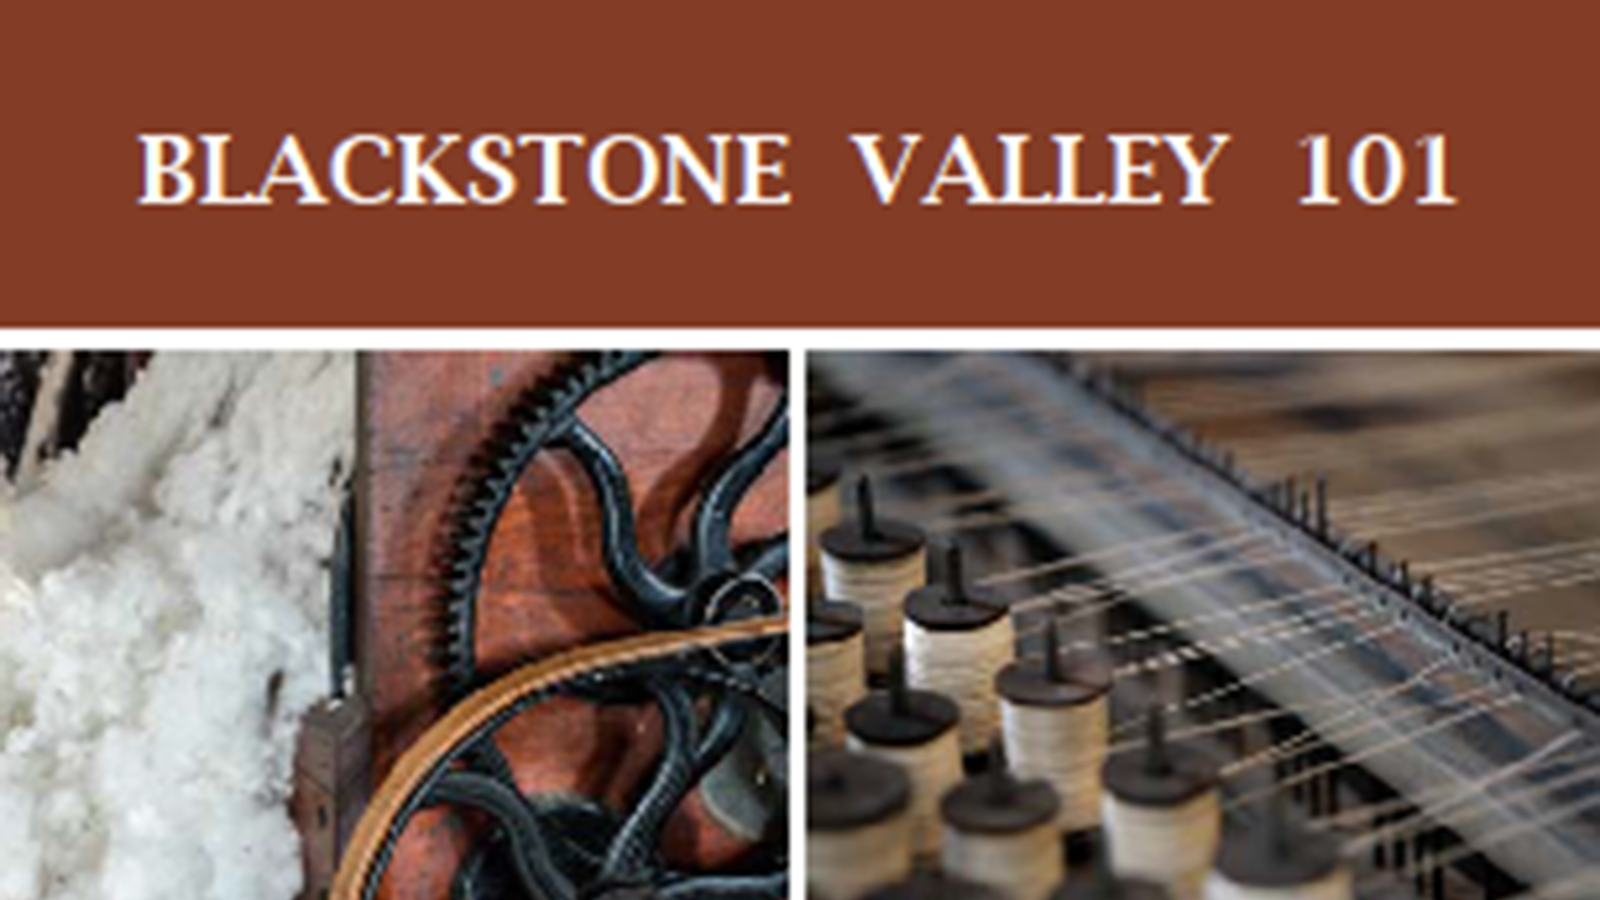 Image of a flyer about the Blackstone Valley